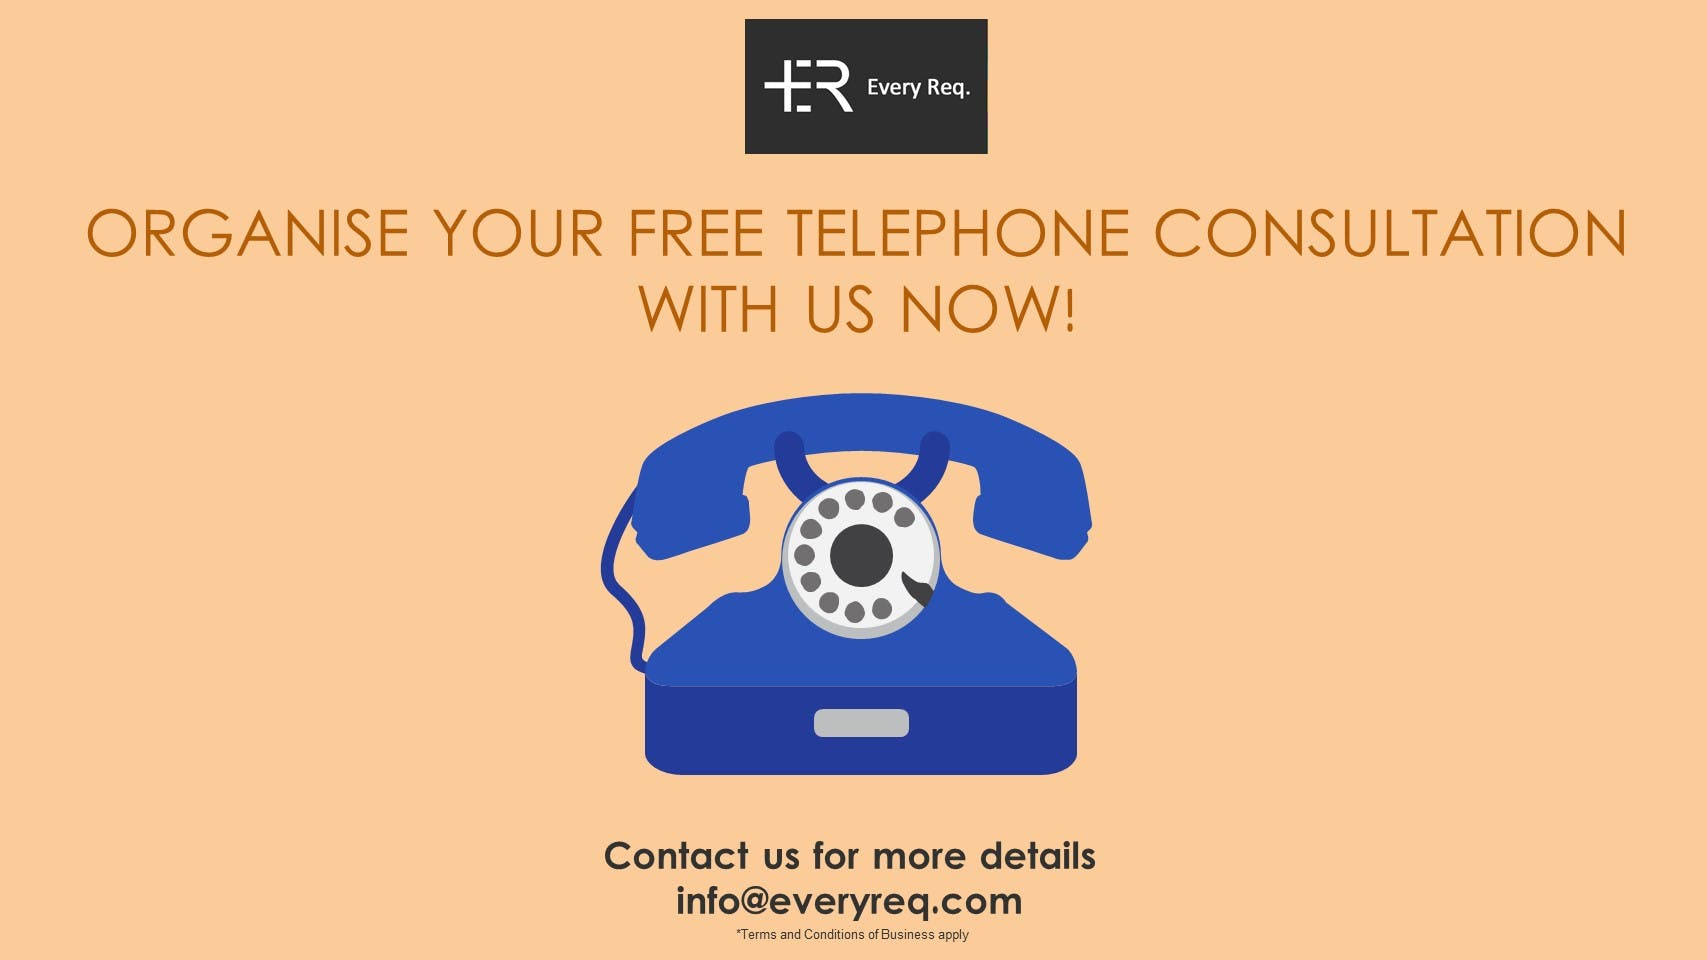 ORGANISE YOUR FREE TELEPHONE CONSULTATION